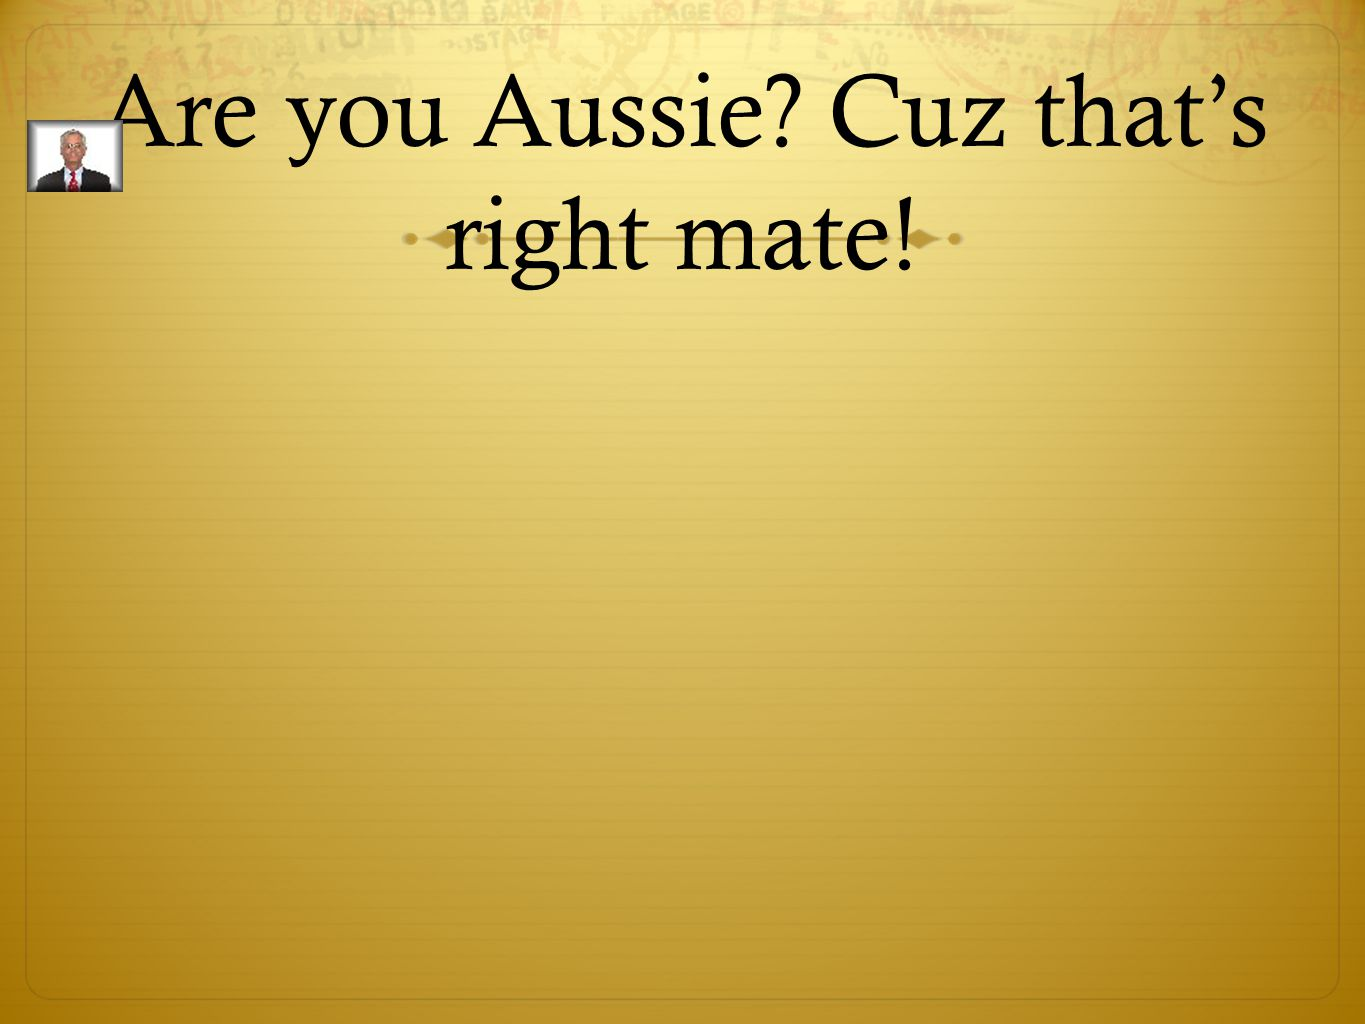 Are you Aussie Cuz that's right mate!